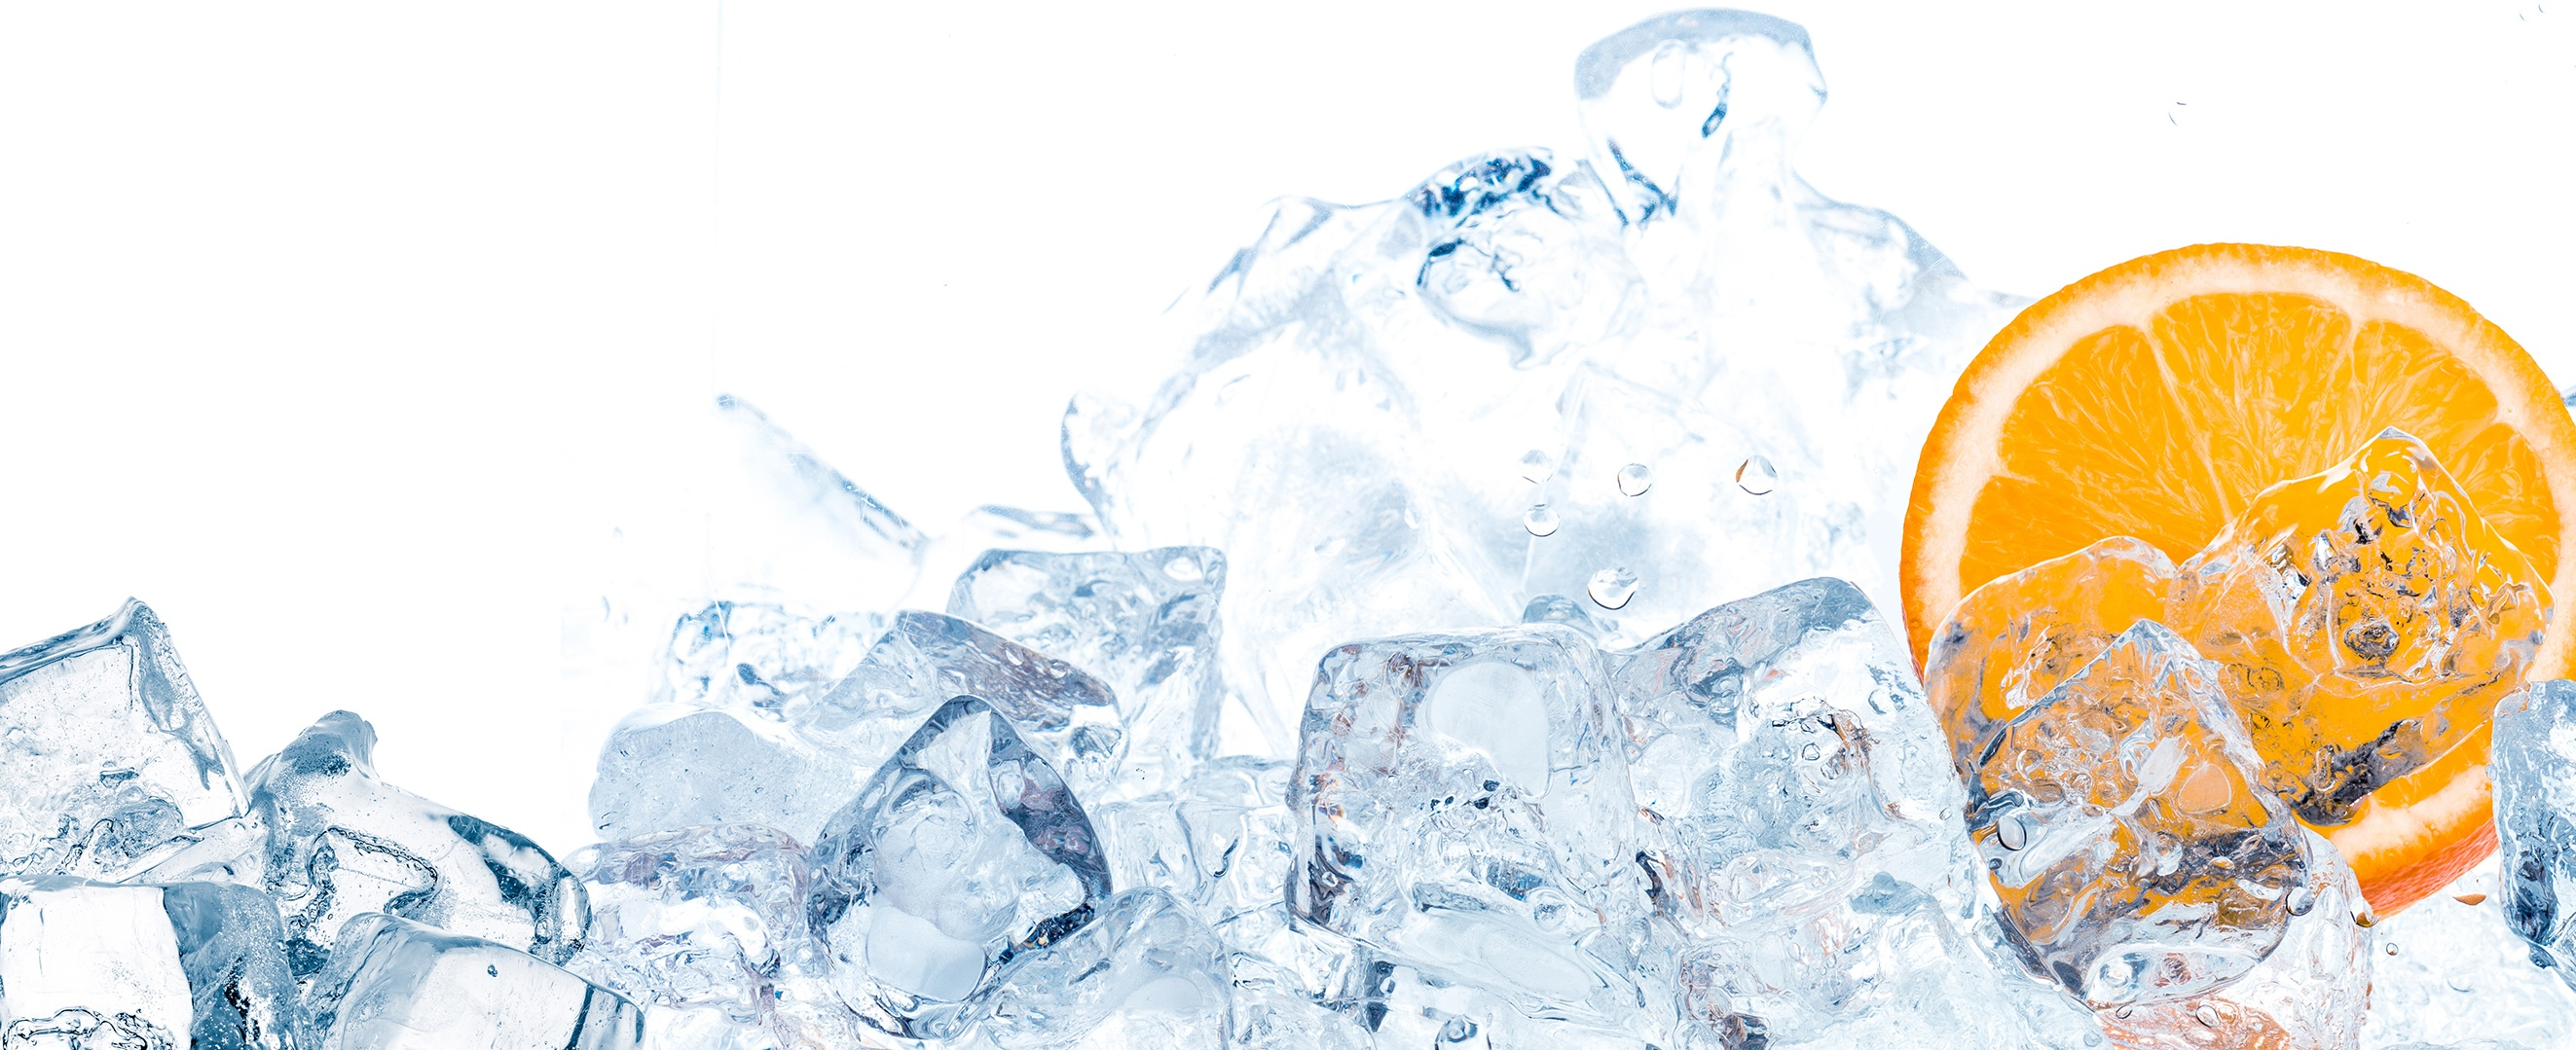 header-summer-ice-small_559737724.jpg